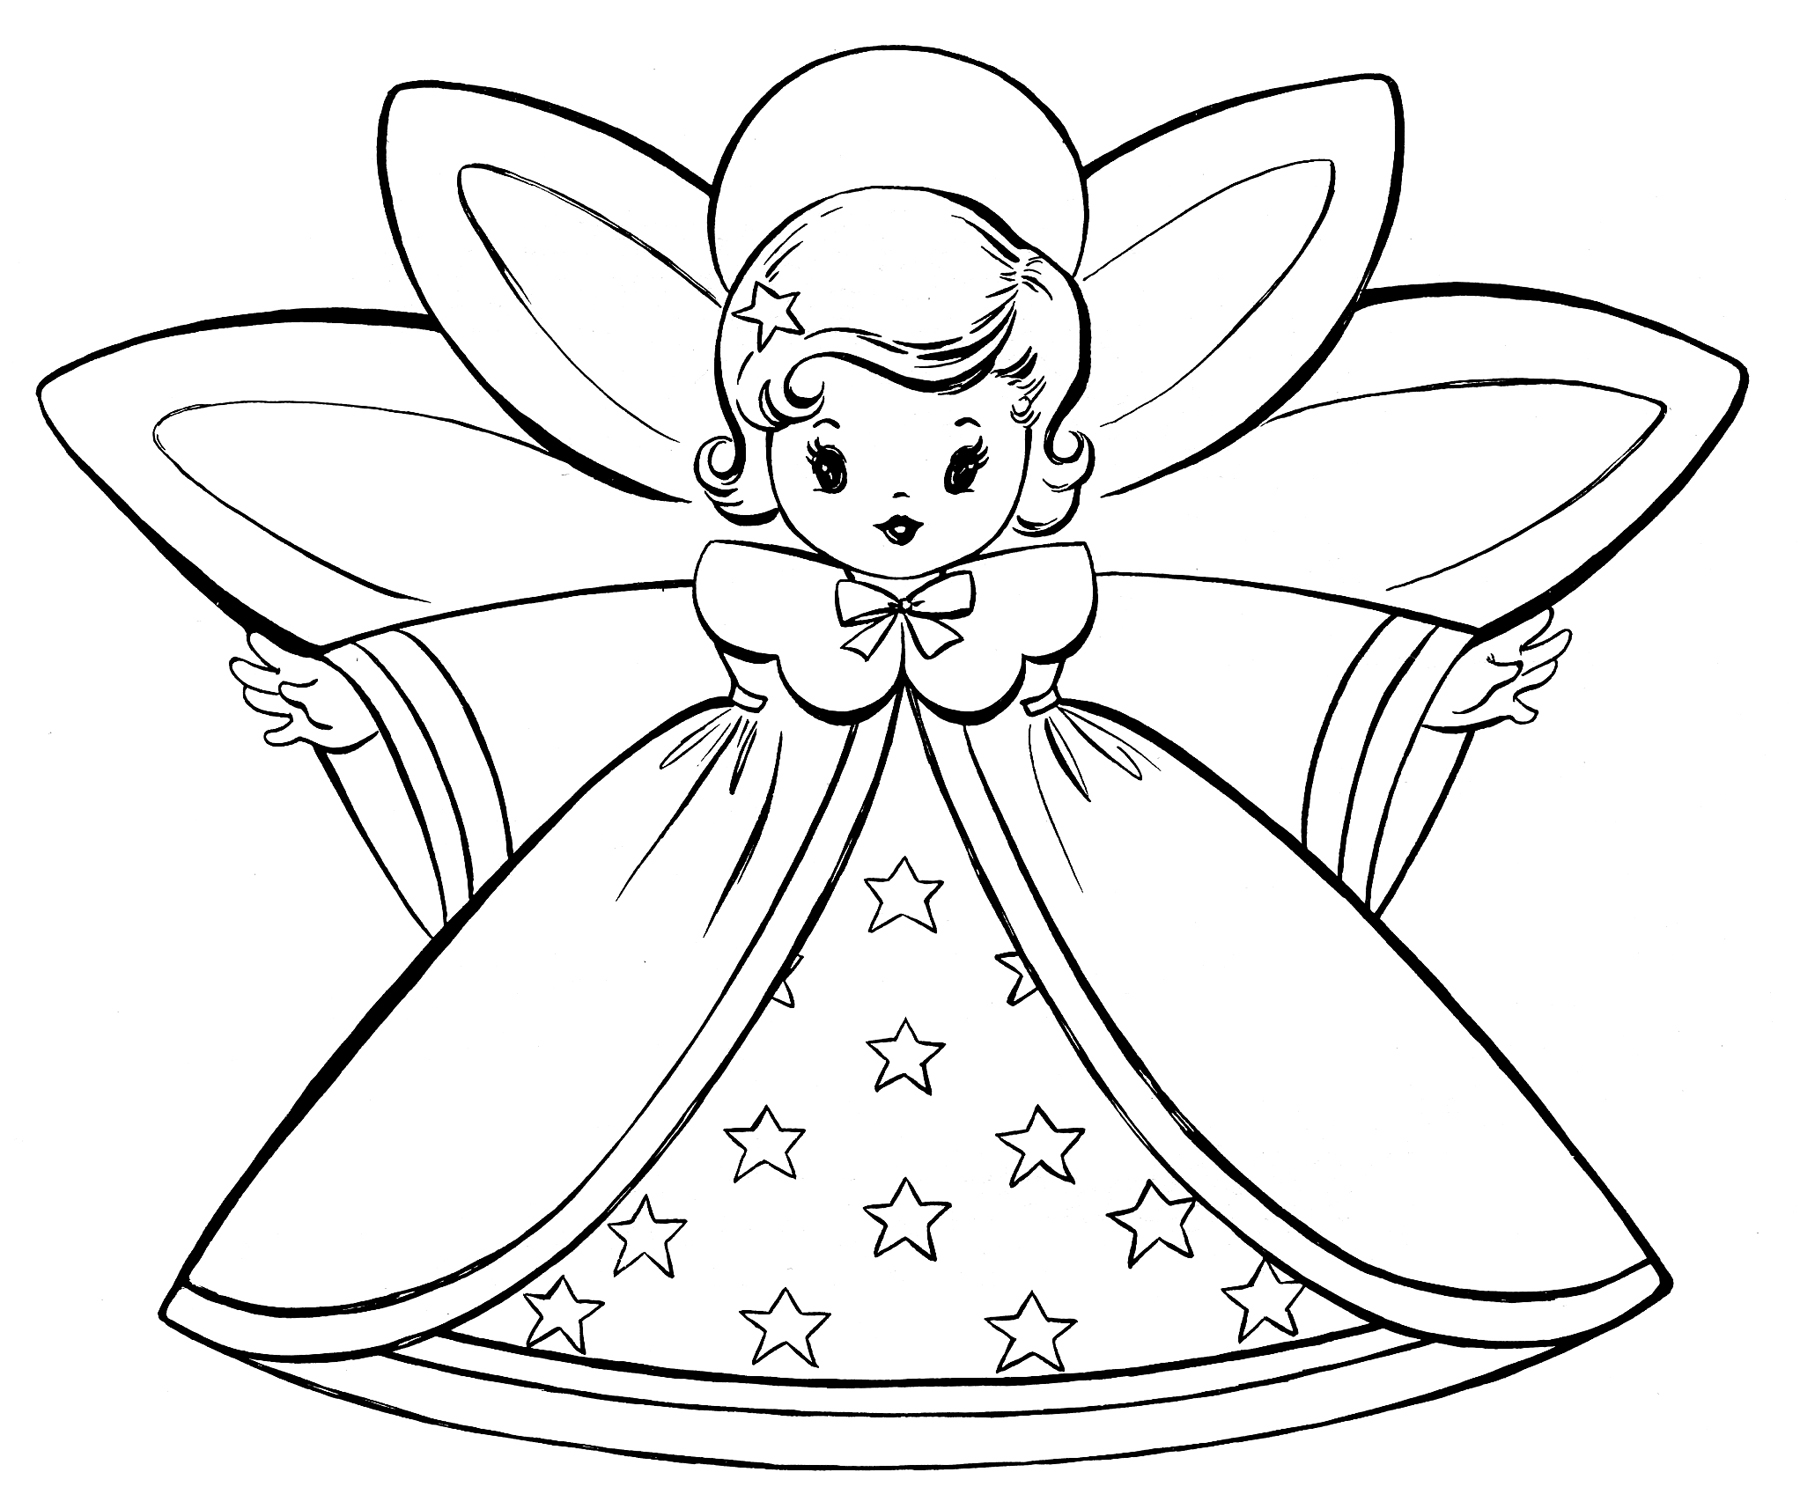 Free christmas coloring pages retro angels the for Coloring pages for kids christmas